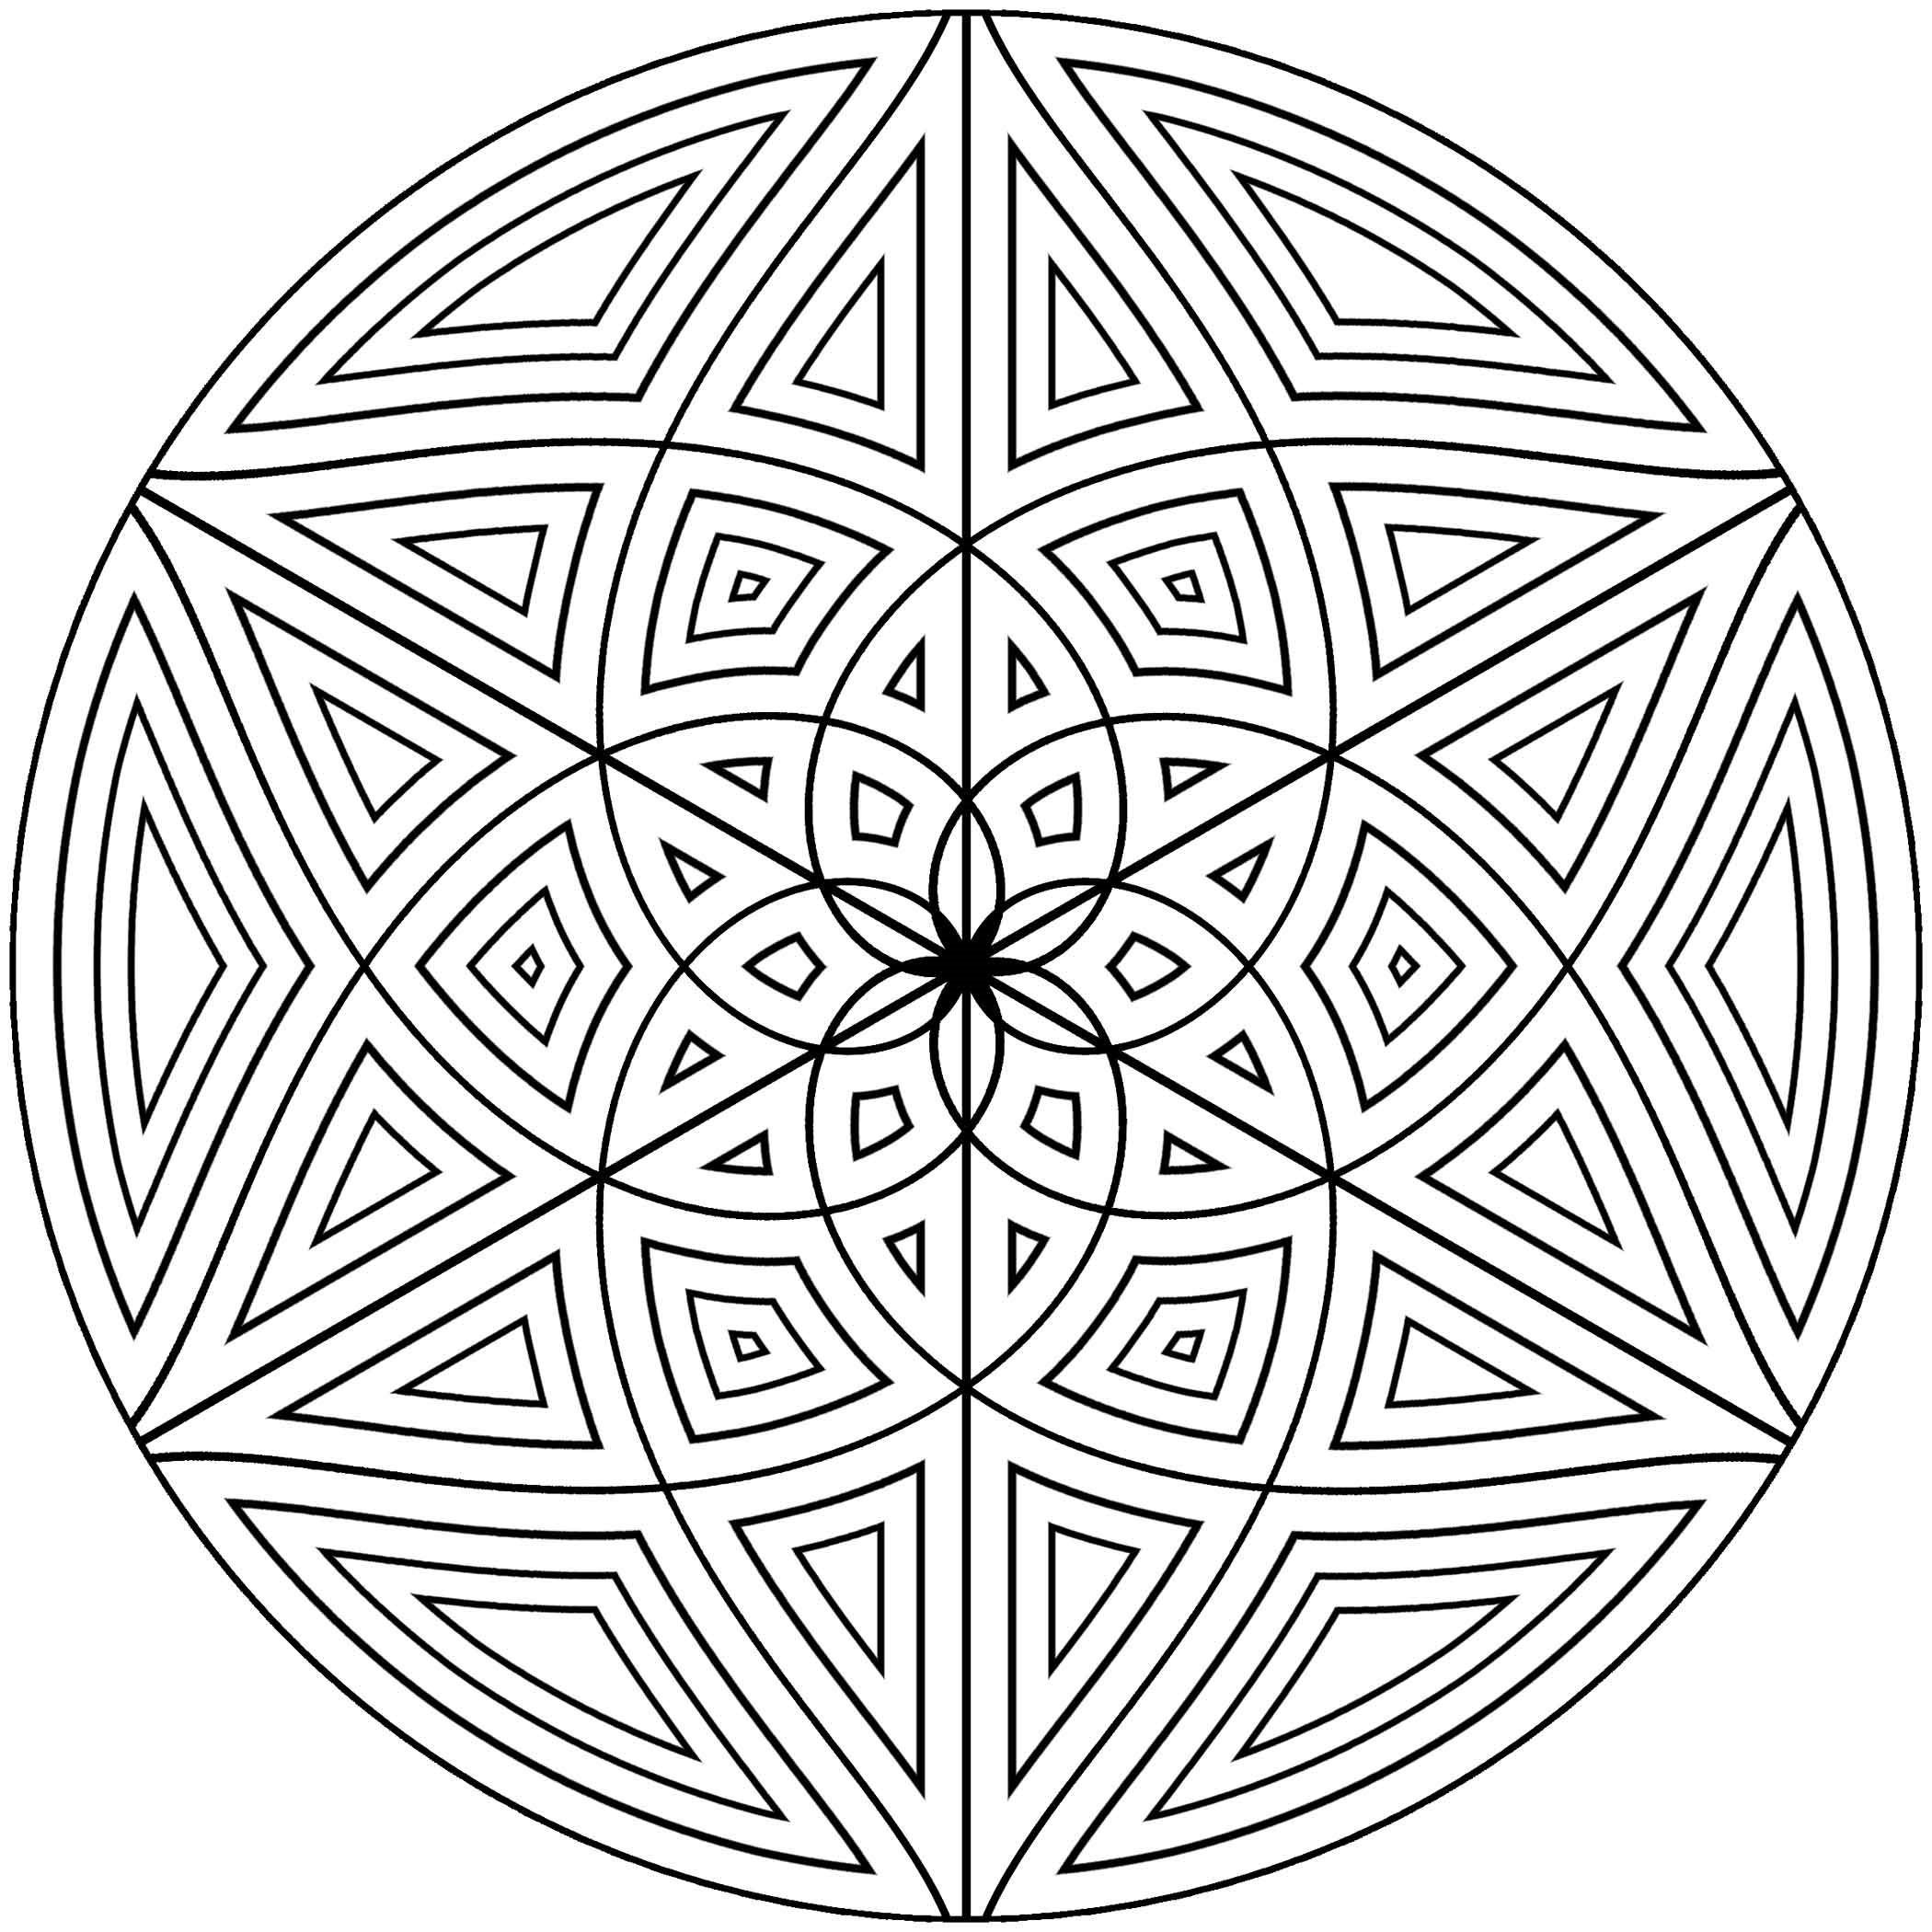 pattern colouring pages to print free printable geometric coloring pages for adults pattern pages colouring print to